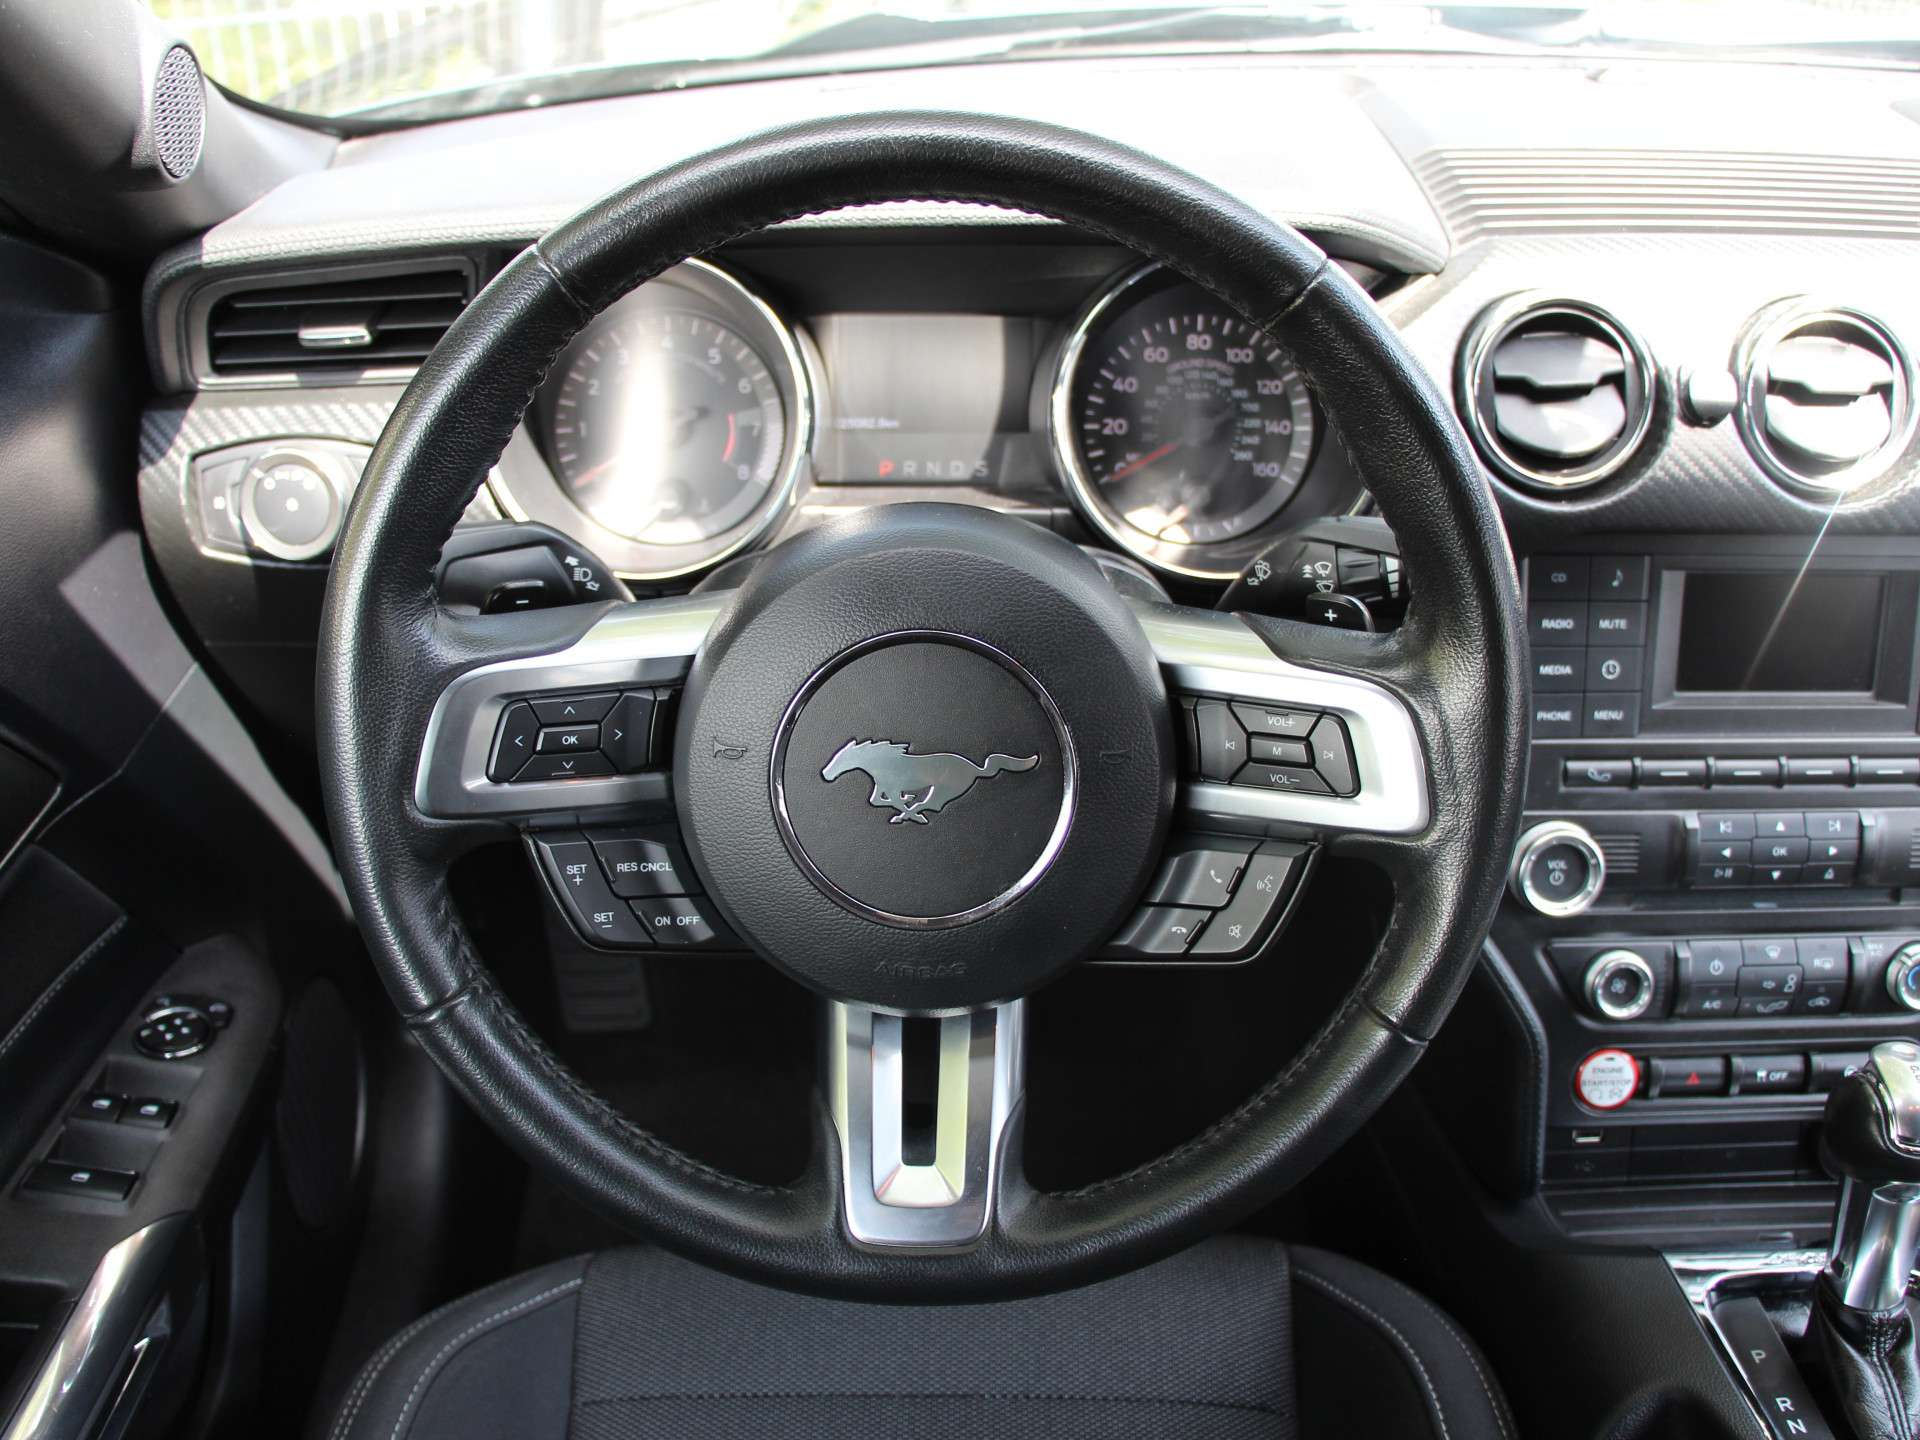 Tweedehands Ford Mustang V6 Cabrio occasion